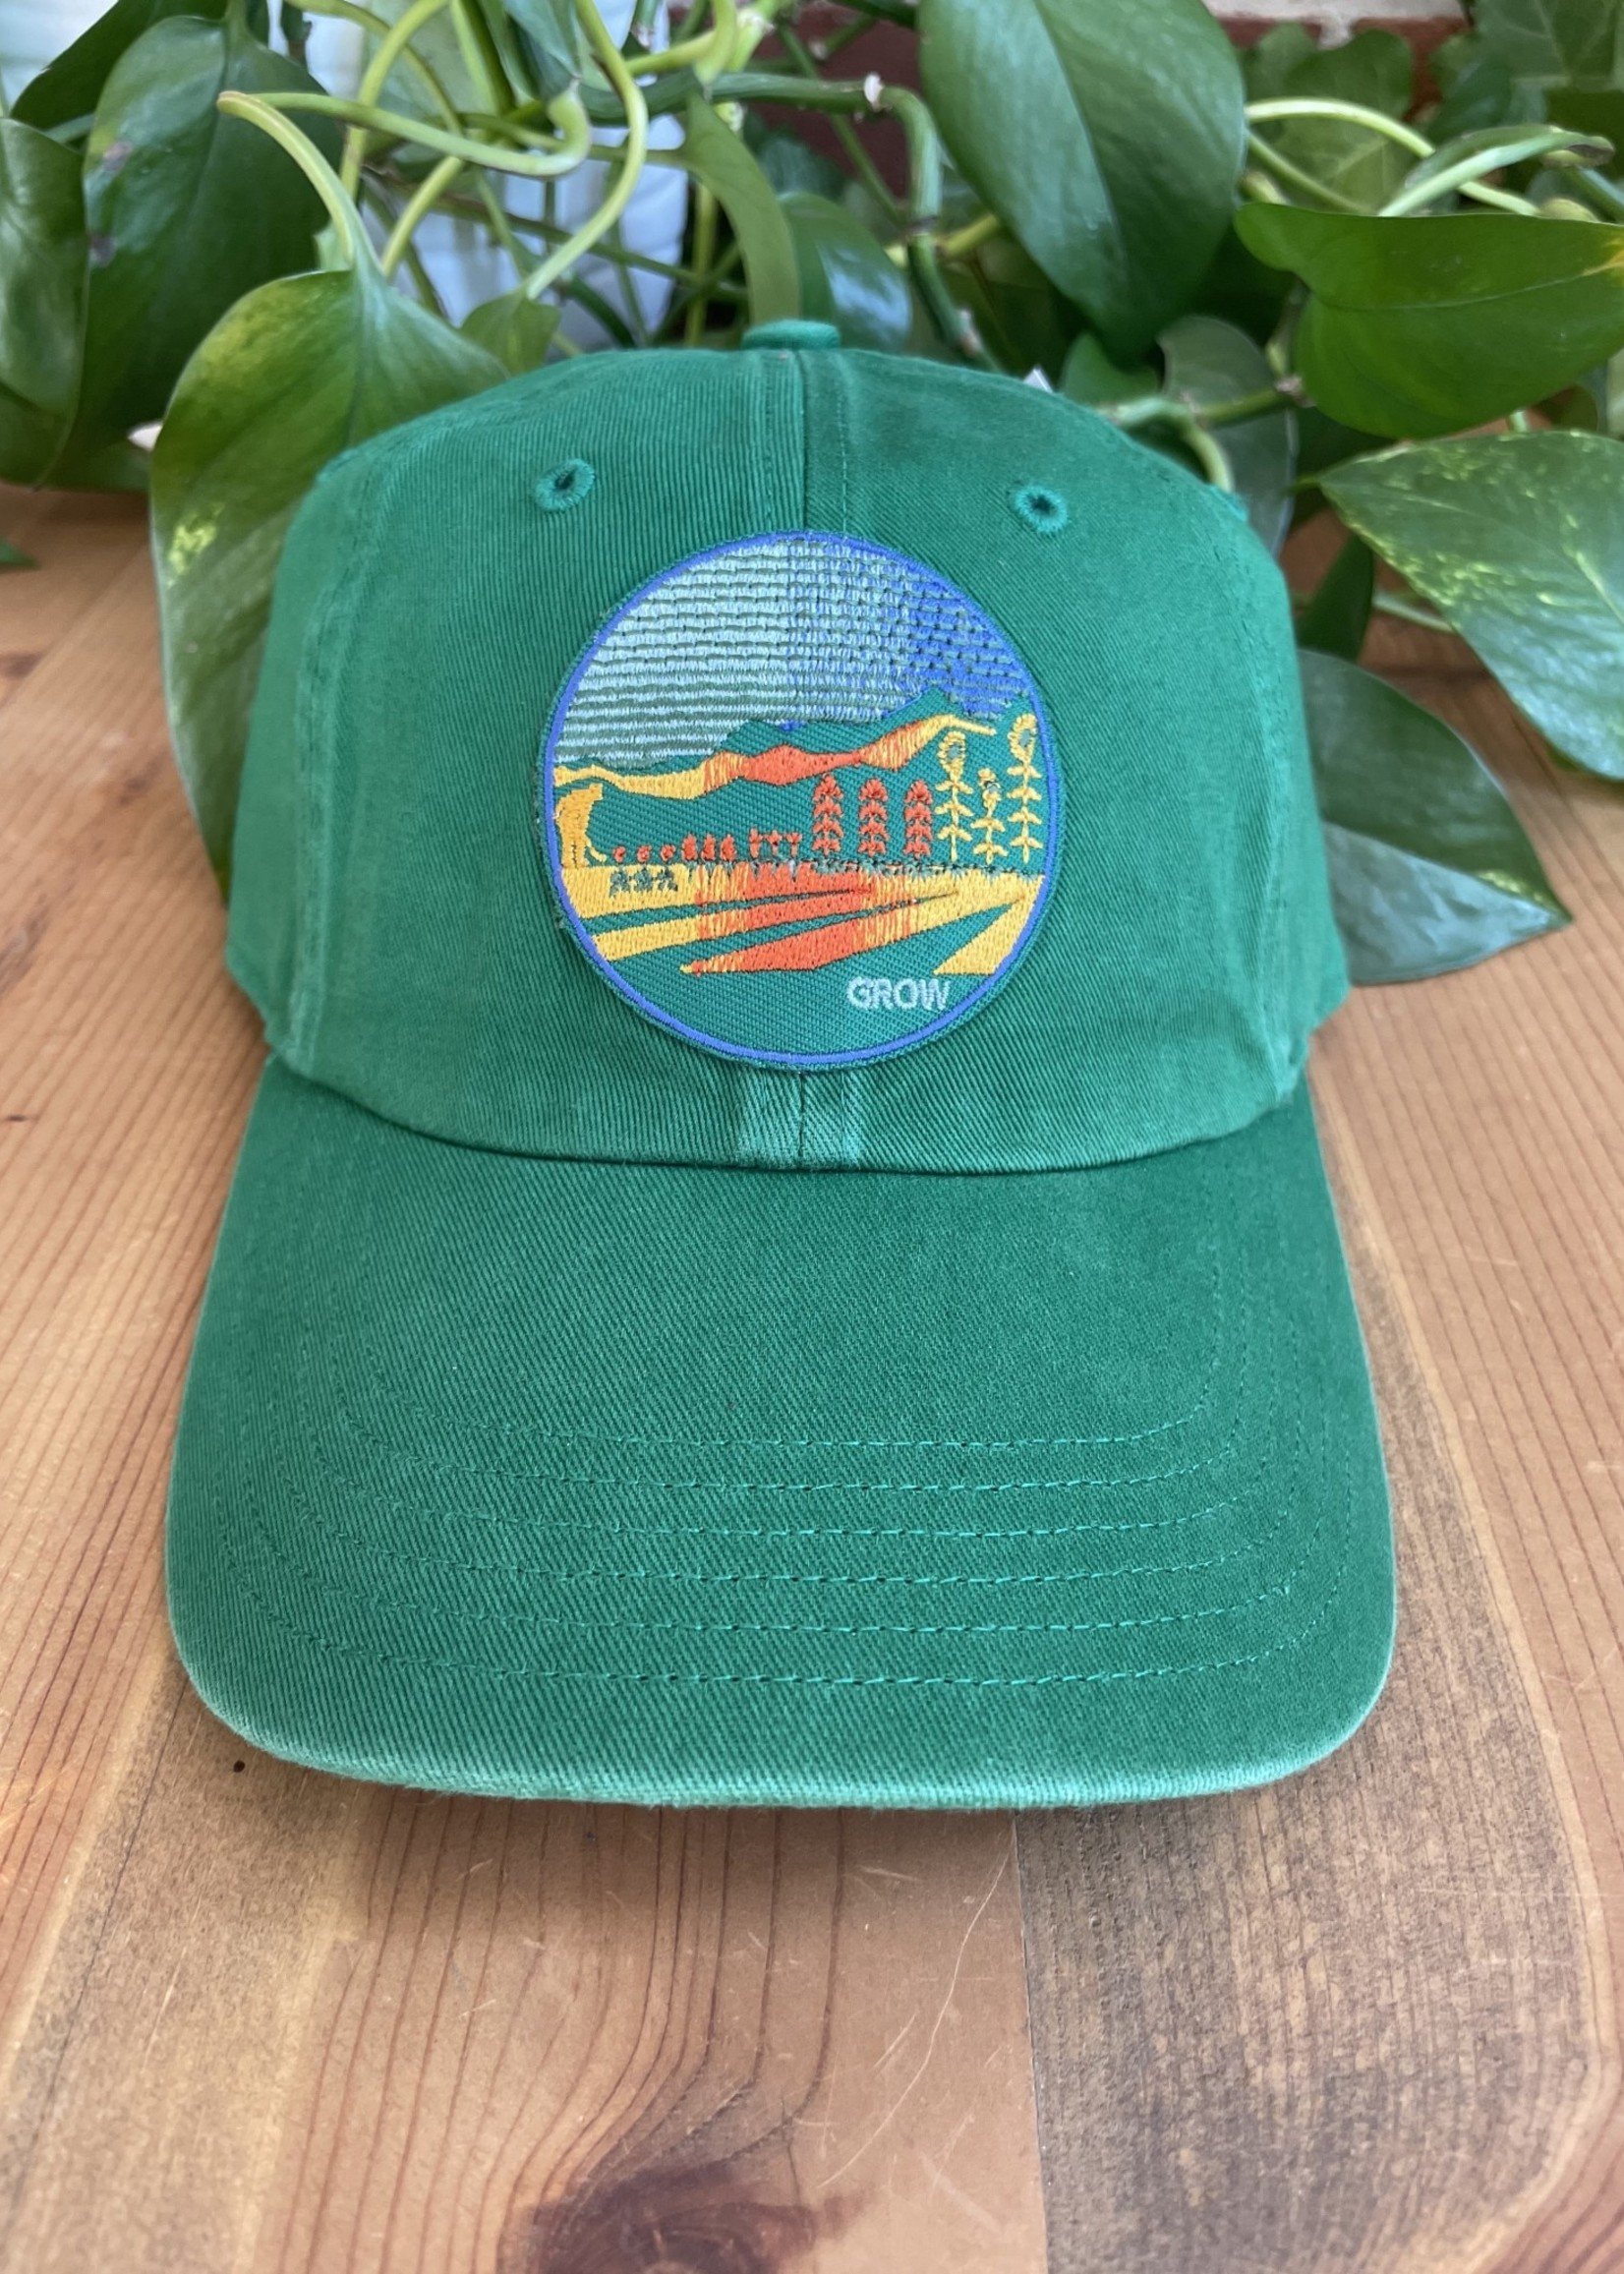 Hat - Curved Bill Grow